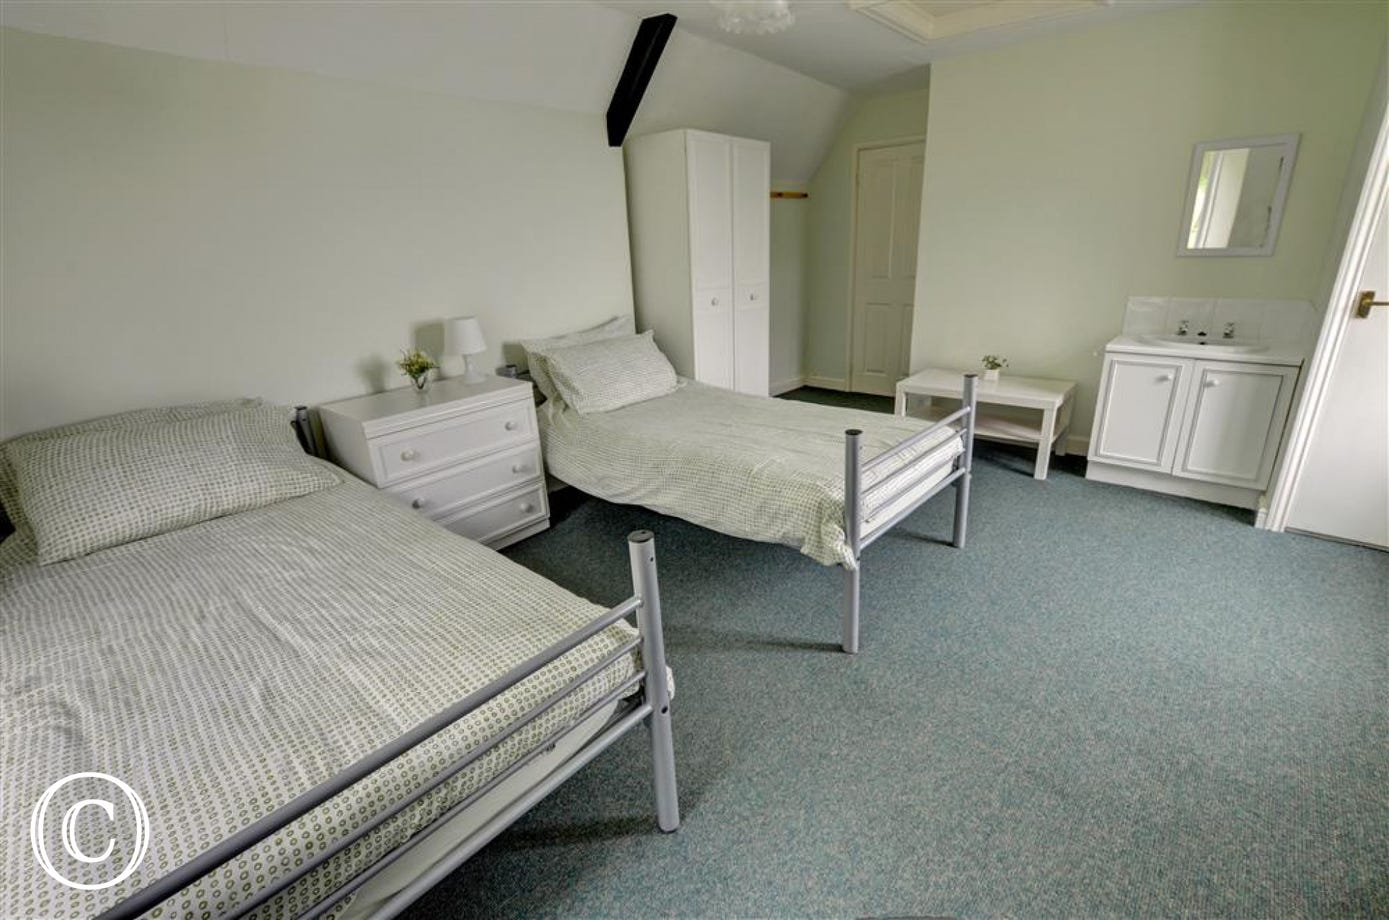 Spacious and comfortable twin bedroom with hand basin.